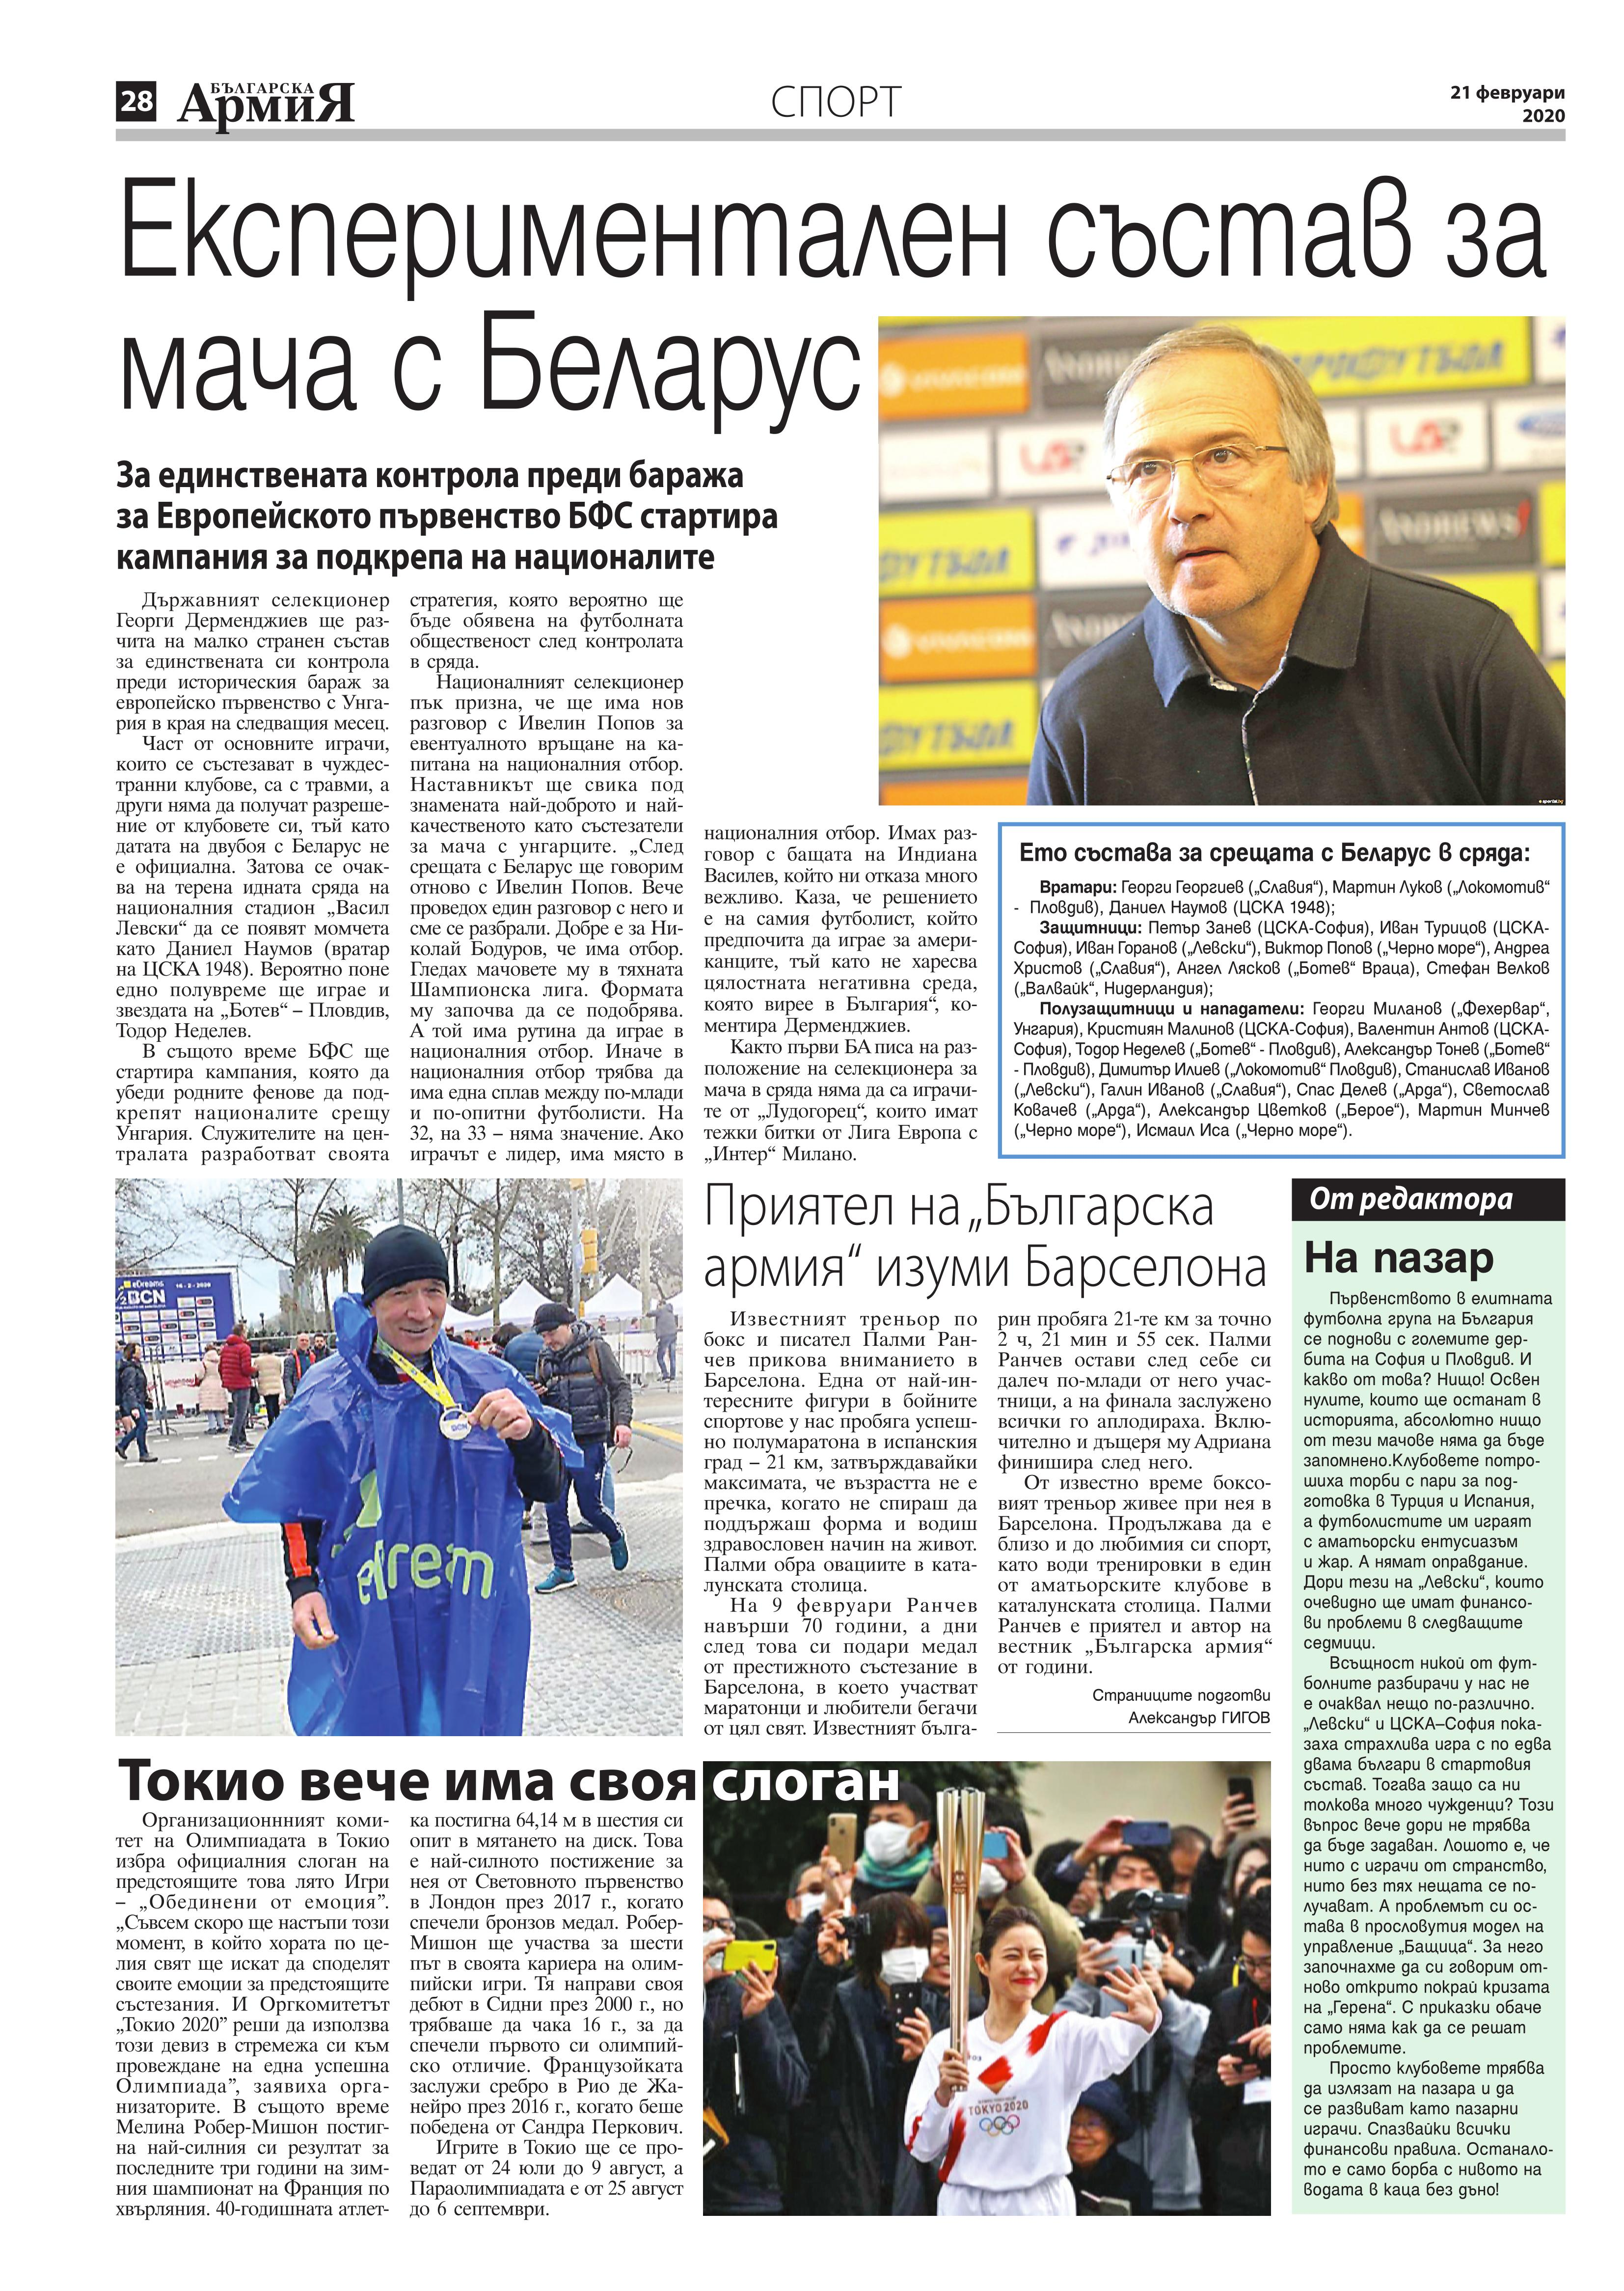 https://www.armymedia.bg/wp-content/uploads/2015/06/28.page1_-107.jpg